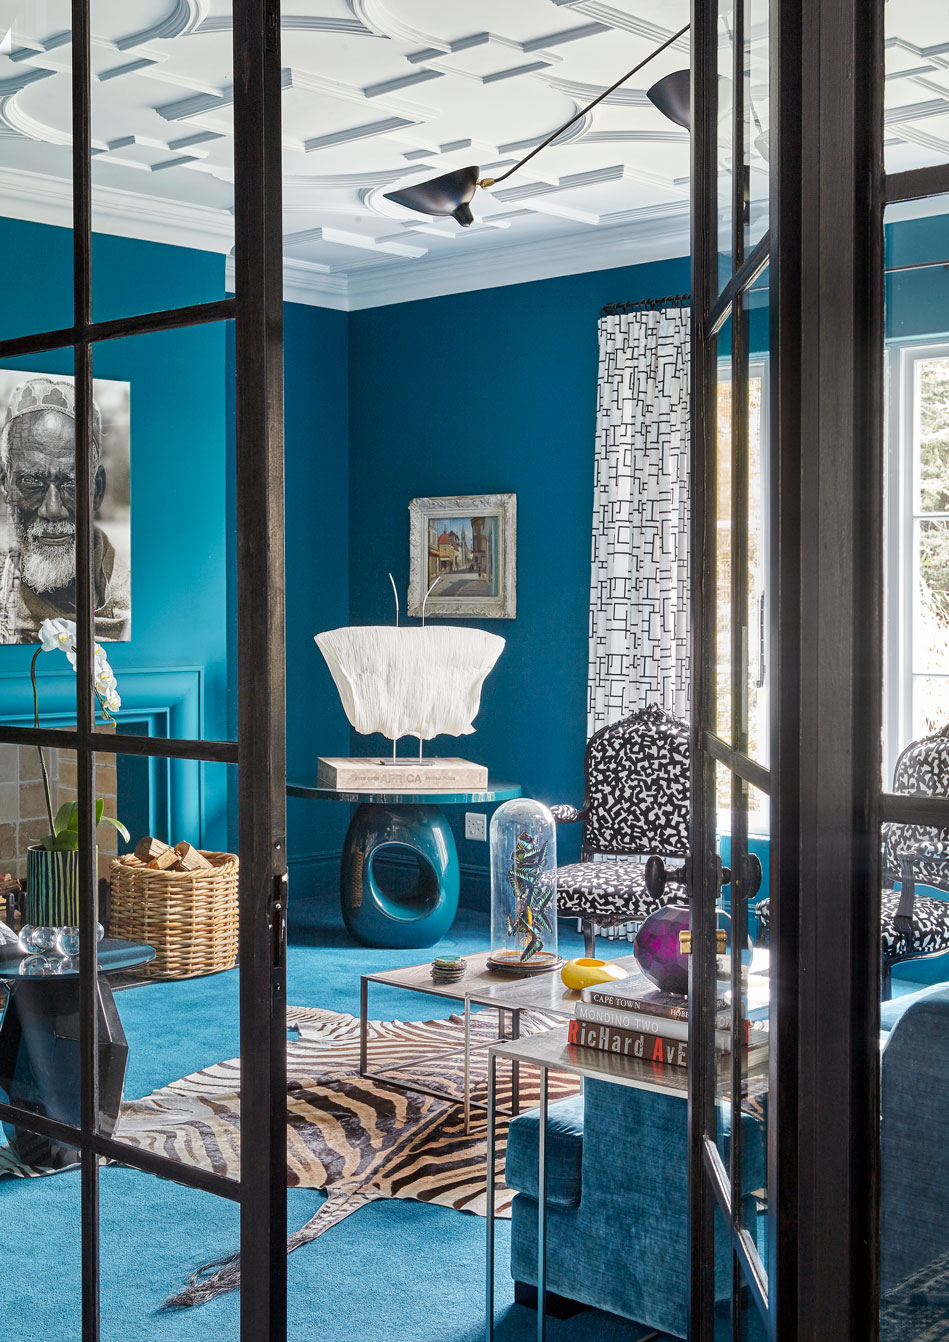 The teal blue wall hue was matched to the custom coloured Rowley & Hughes carpet in the living room. The family's sofa from Brussels was reupholstered in Mark Alexander empire fabric – also matched to the carpets. The metal French doors were installed. The ceiling lights are original Serge Mouille.  The black and white Fauteuil style chairs in the living room were lacquered and reupholstered in a Diane von Furstenberg-type dress print.  Plaster Art did the ceiling mouldings. The owner cut out a magazine clipping of an example of the moulding she had in mind.  The faceted table is the 'joker' and the hollow base table the 'vera cruz', both by India Mahdavi.